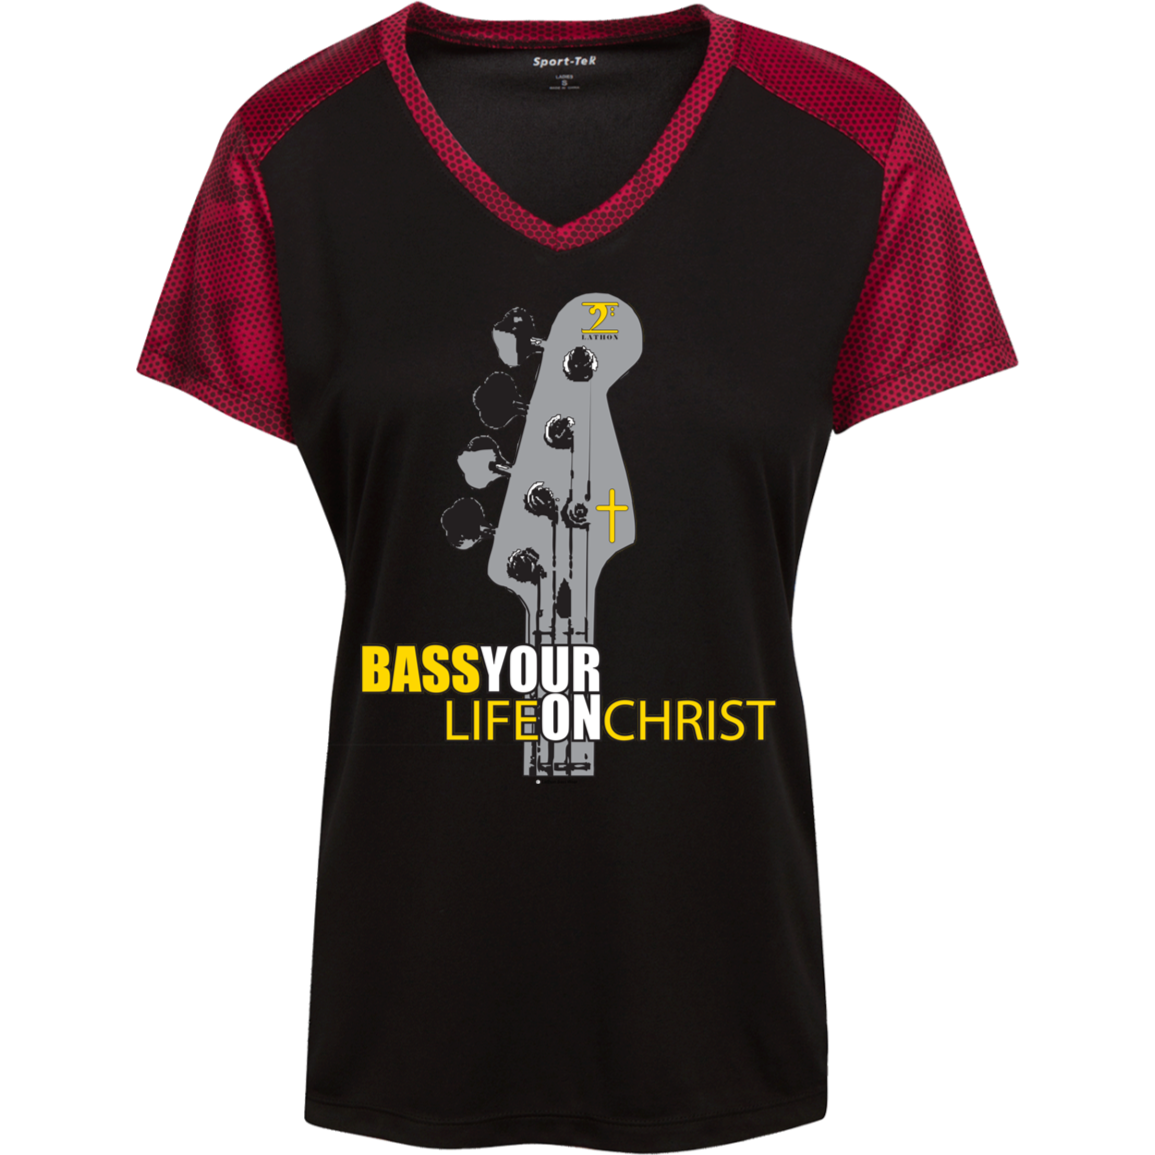 BASS YOUR LIFE ON CHRIST Ladies' CamoHex Colorblock T-Shirt - Lathon Bass Wear